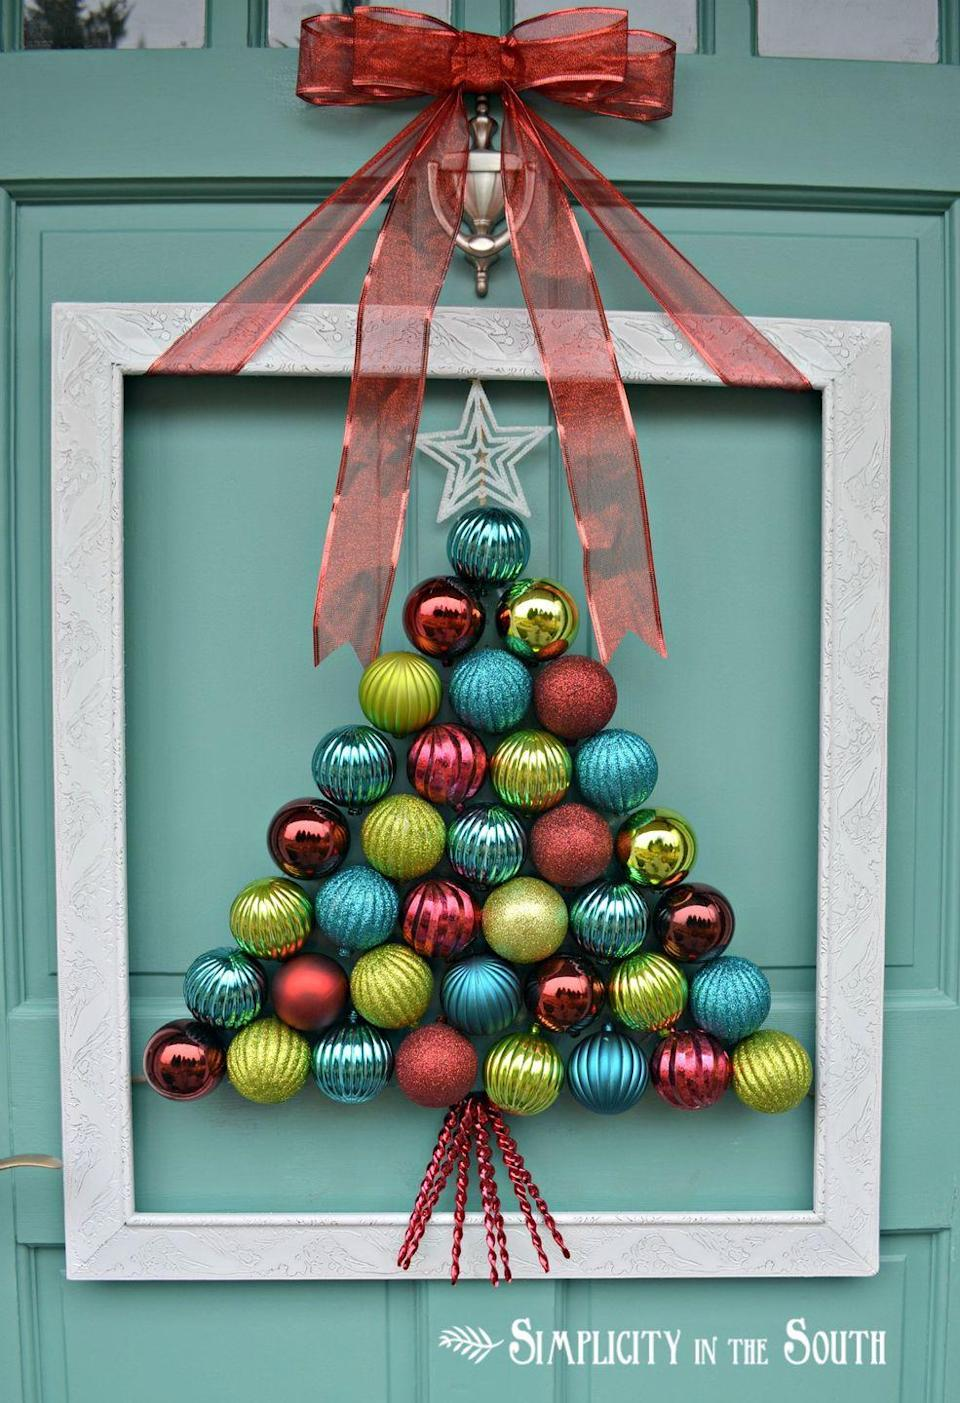 "<p>Frame a colorful Christmas tree and tie it with a big red bow for a true statement maker. <br></p><p><em><a href=""http://www.simplicityinthesouth.com/2012/12/framed-christmas-tree-ornament-wreath.html"" rel=""nofollow noopener"" target=""_blank"" data-ylk=""slk:Get the tutorial at Simplicity In the South »"" class=""link rapid-noclick-resp"">Get the tutorial at Simplicity In the South »</a></em><br></p>"